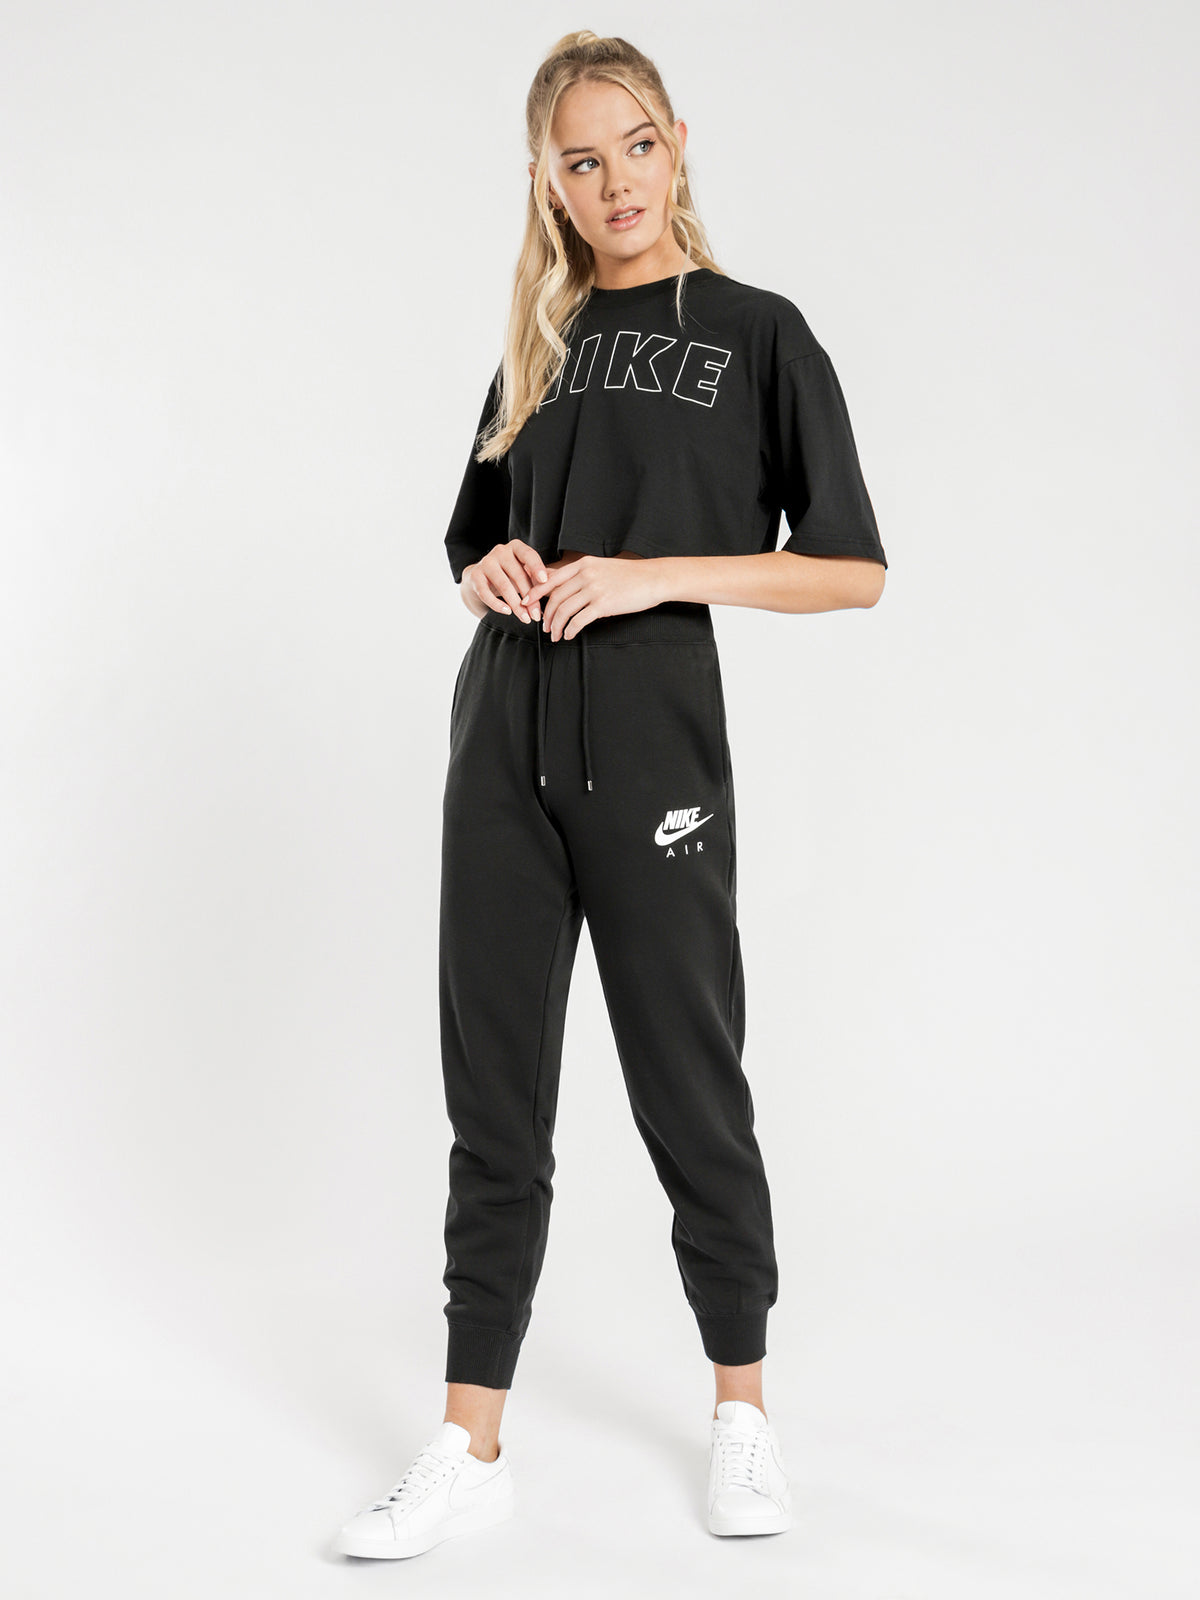 NSW Air Track Pants in Black